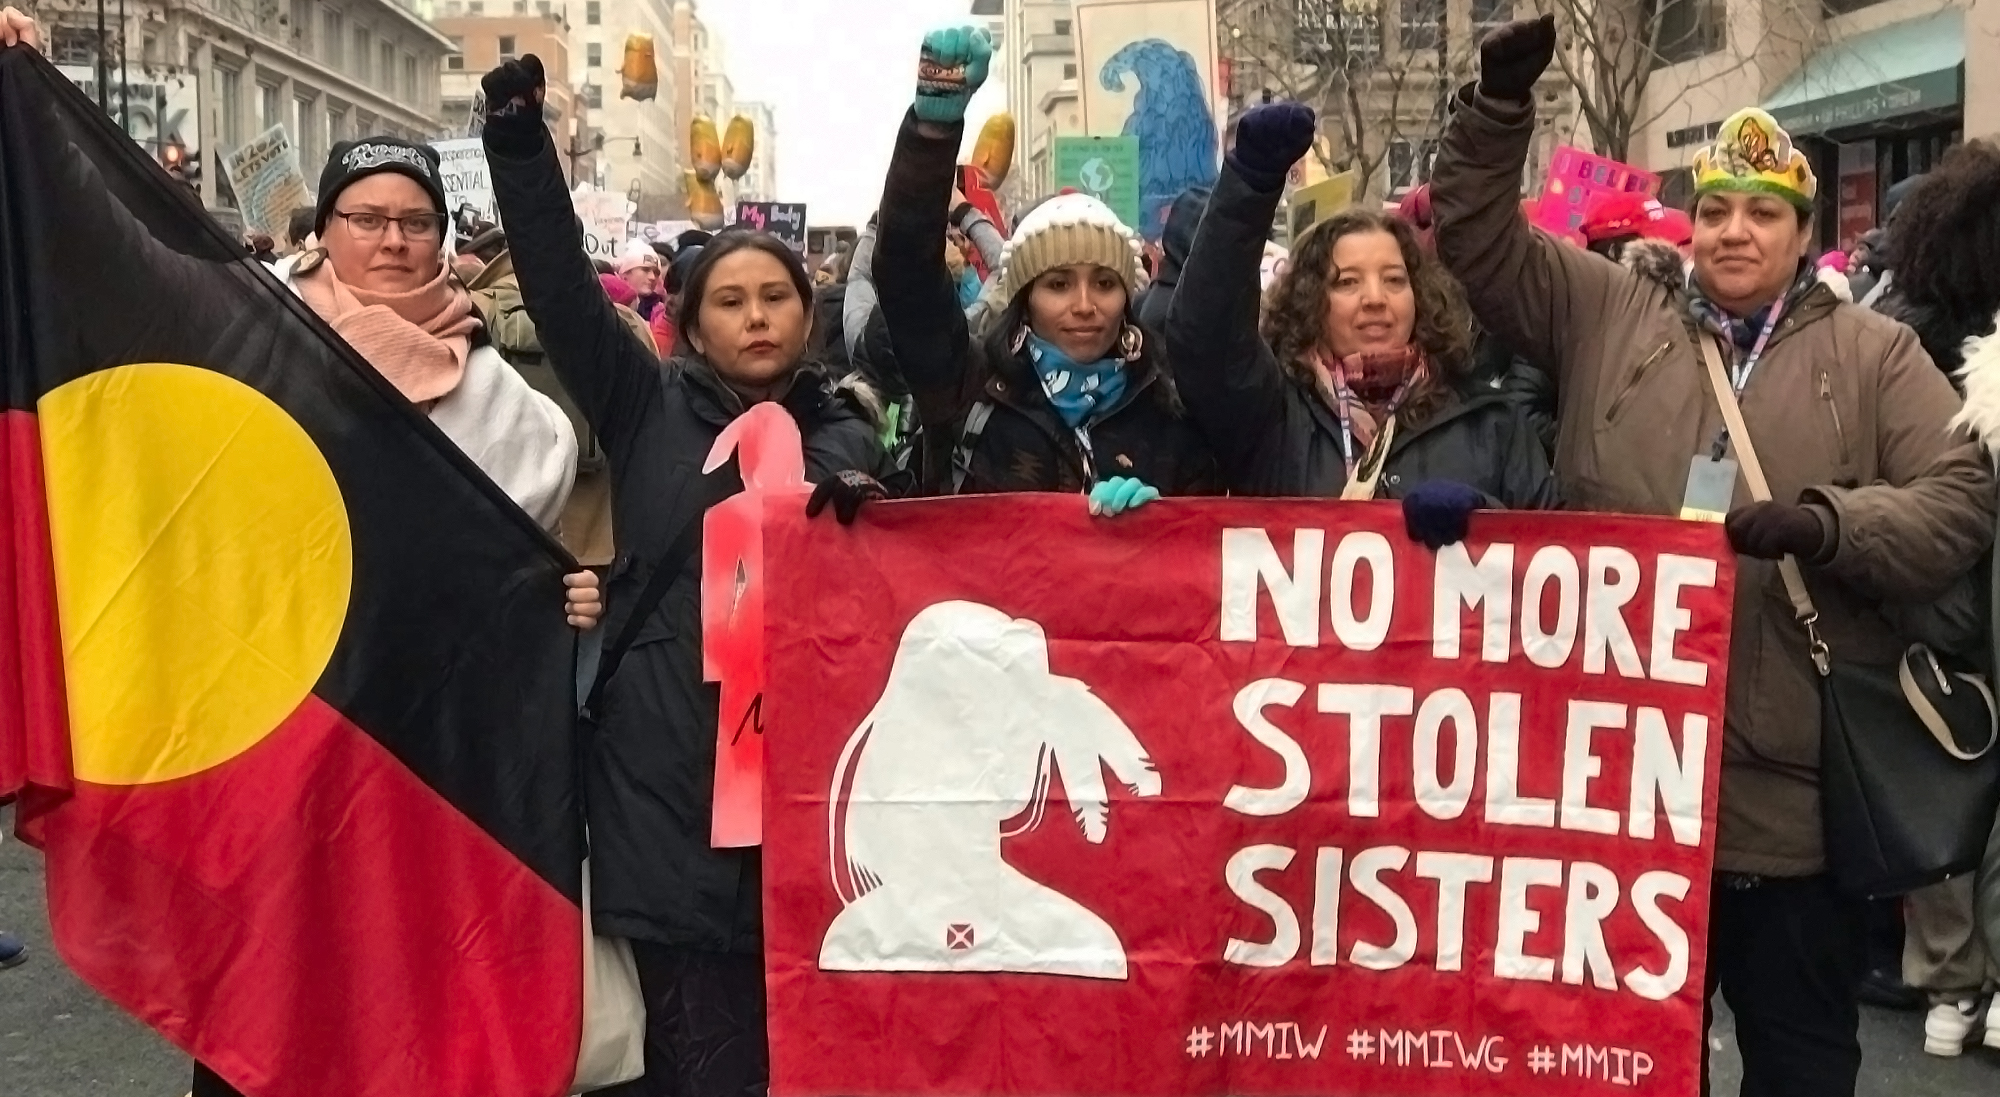 MMIW - California is one of the top 10 states that Indigenous women are facing a crisis of survival. RJIP has been providing support to impacted families through advocacy, healing circles, and helping to create survivor centered spaces.